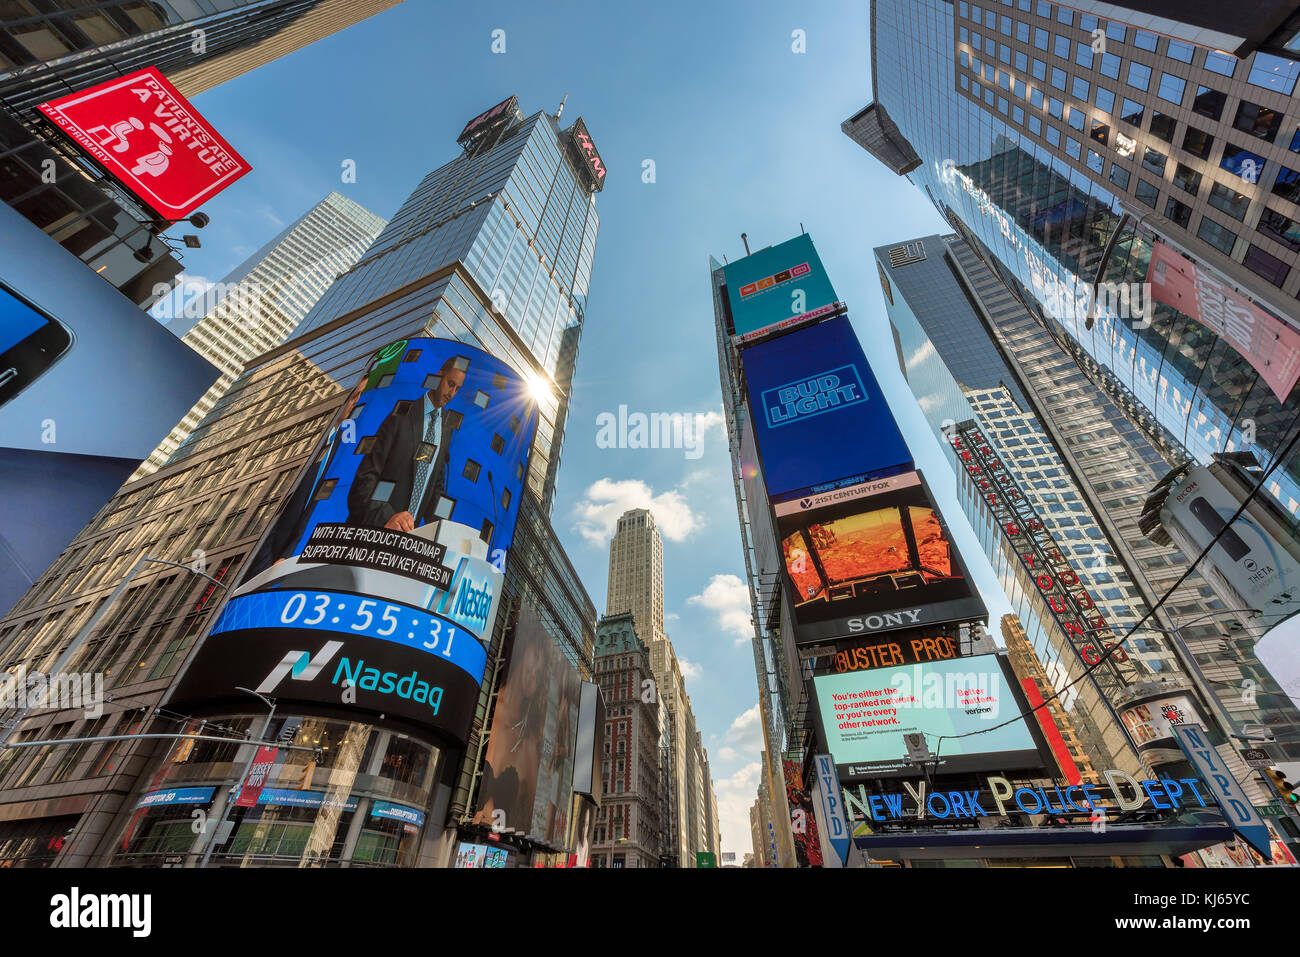 NASDAQ building of Time Square in New York - Stock Image